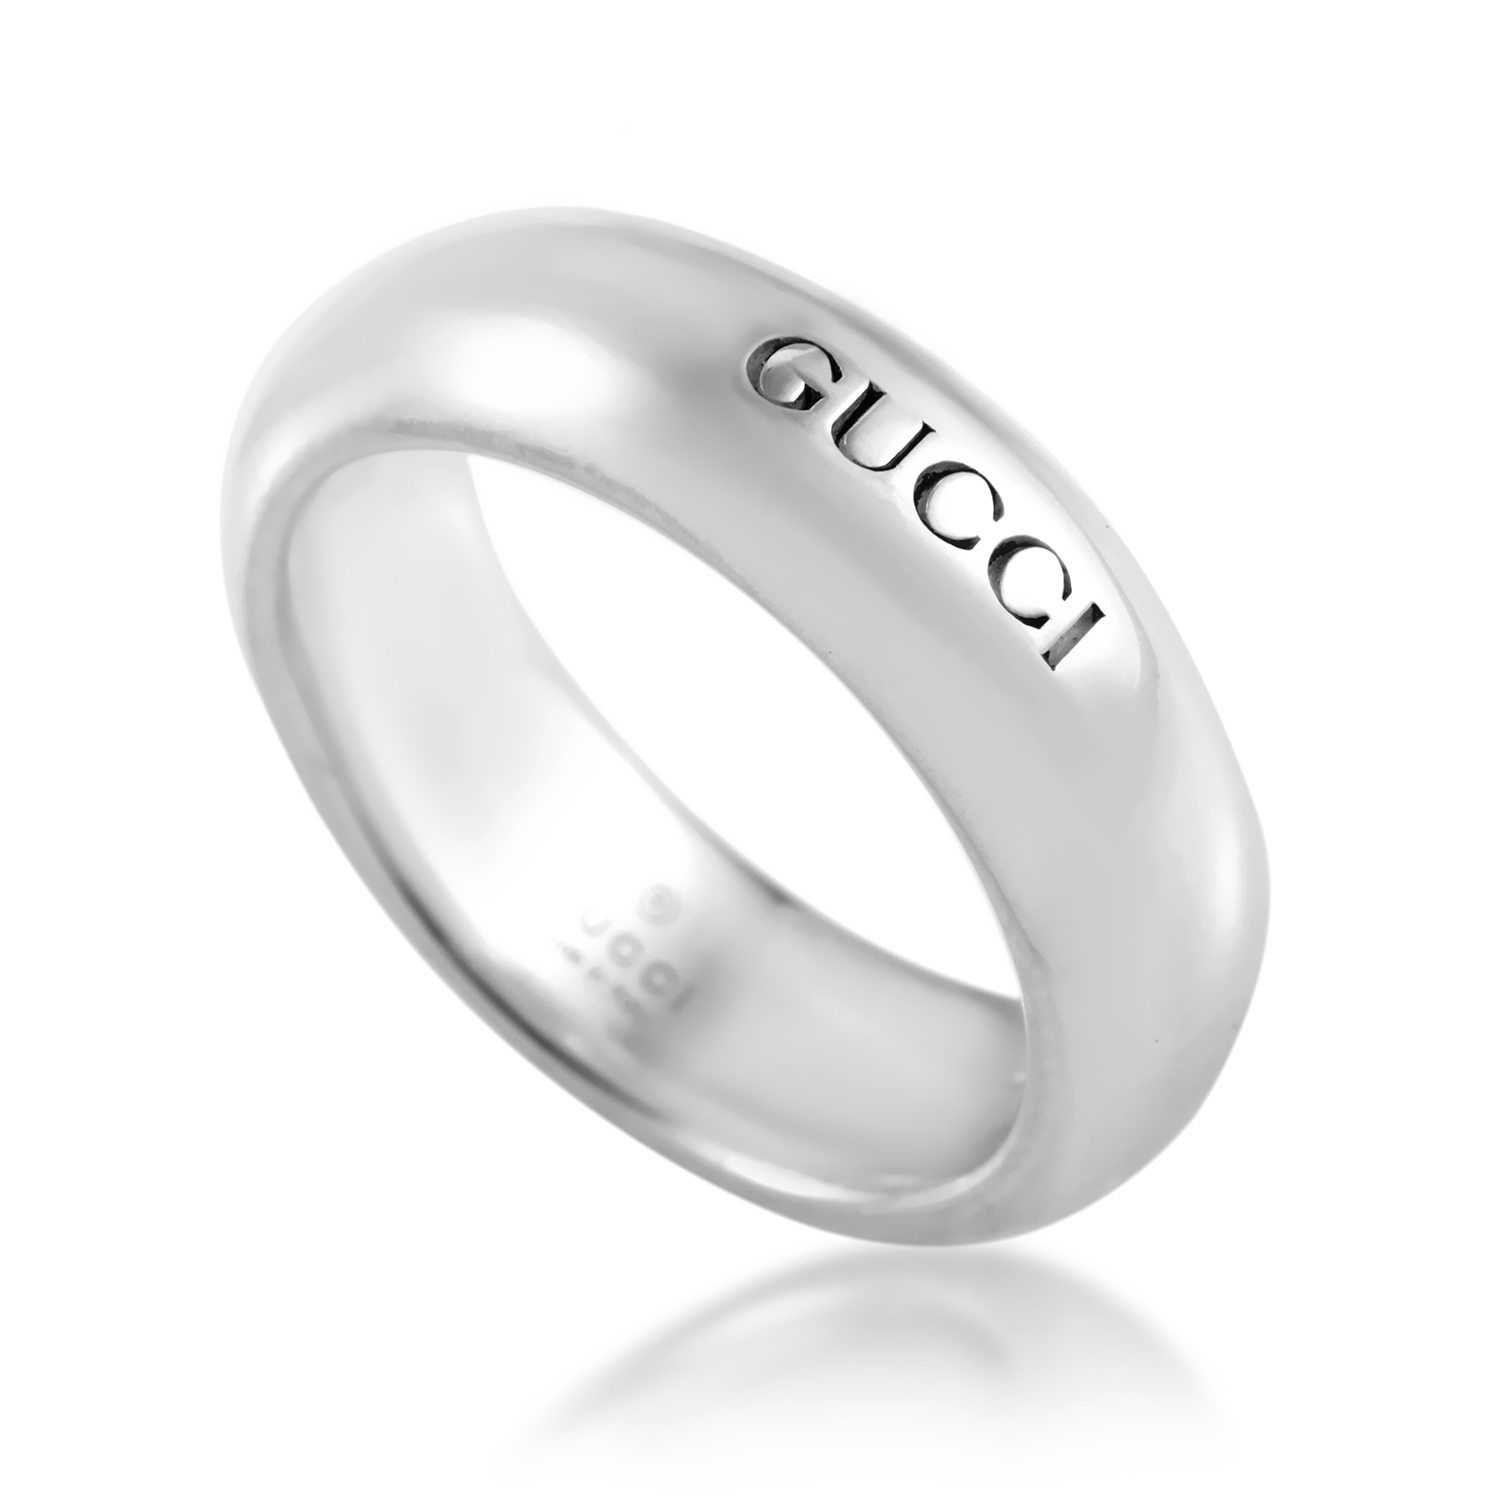 Sterling Silver Gucci Signature Band Ring 163216J84008106